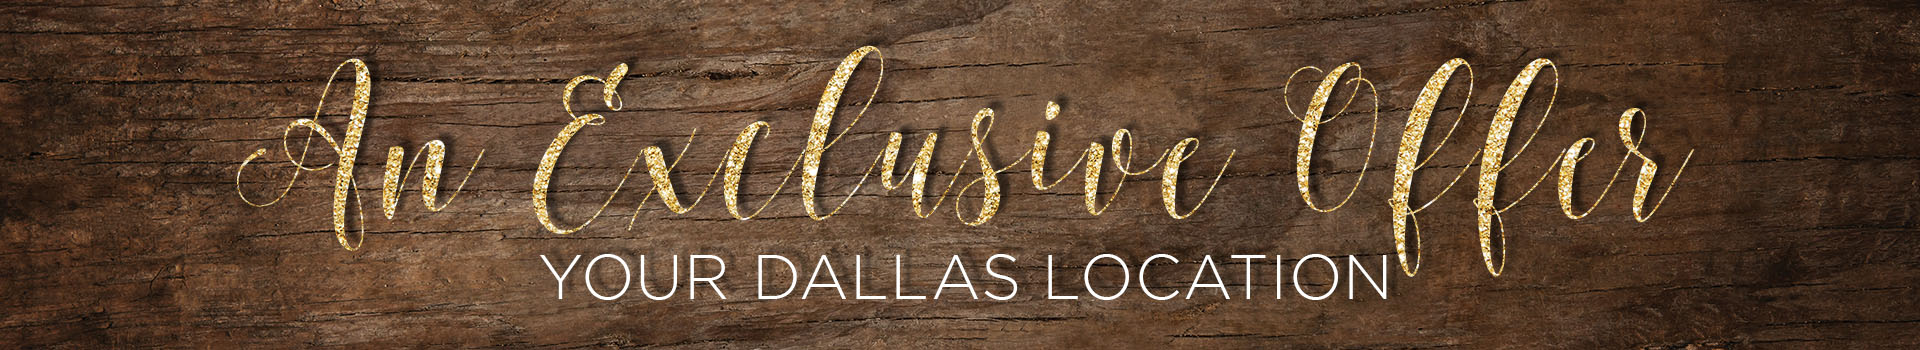 yourdallaslocation_wp_exclusive offer banner